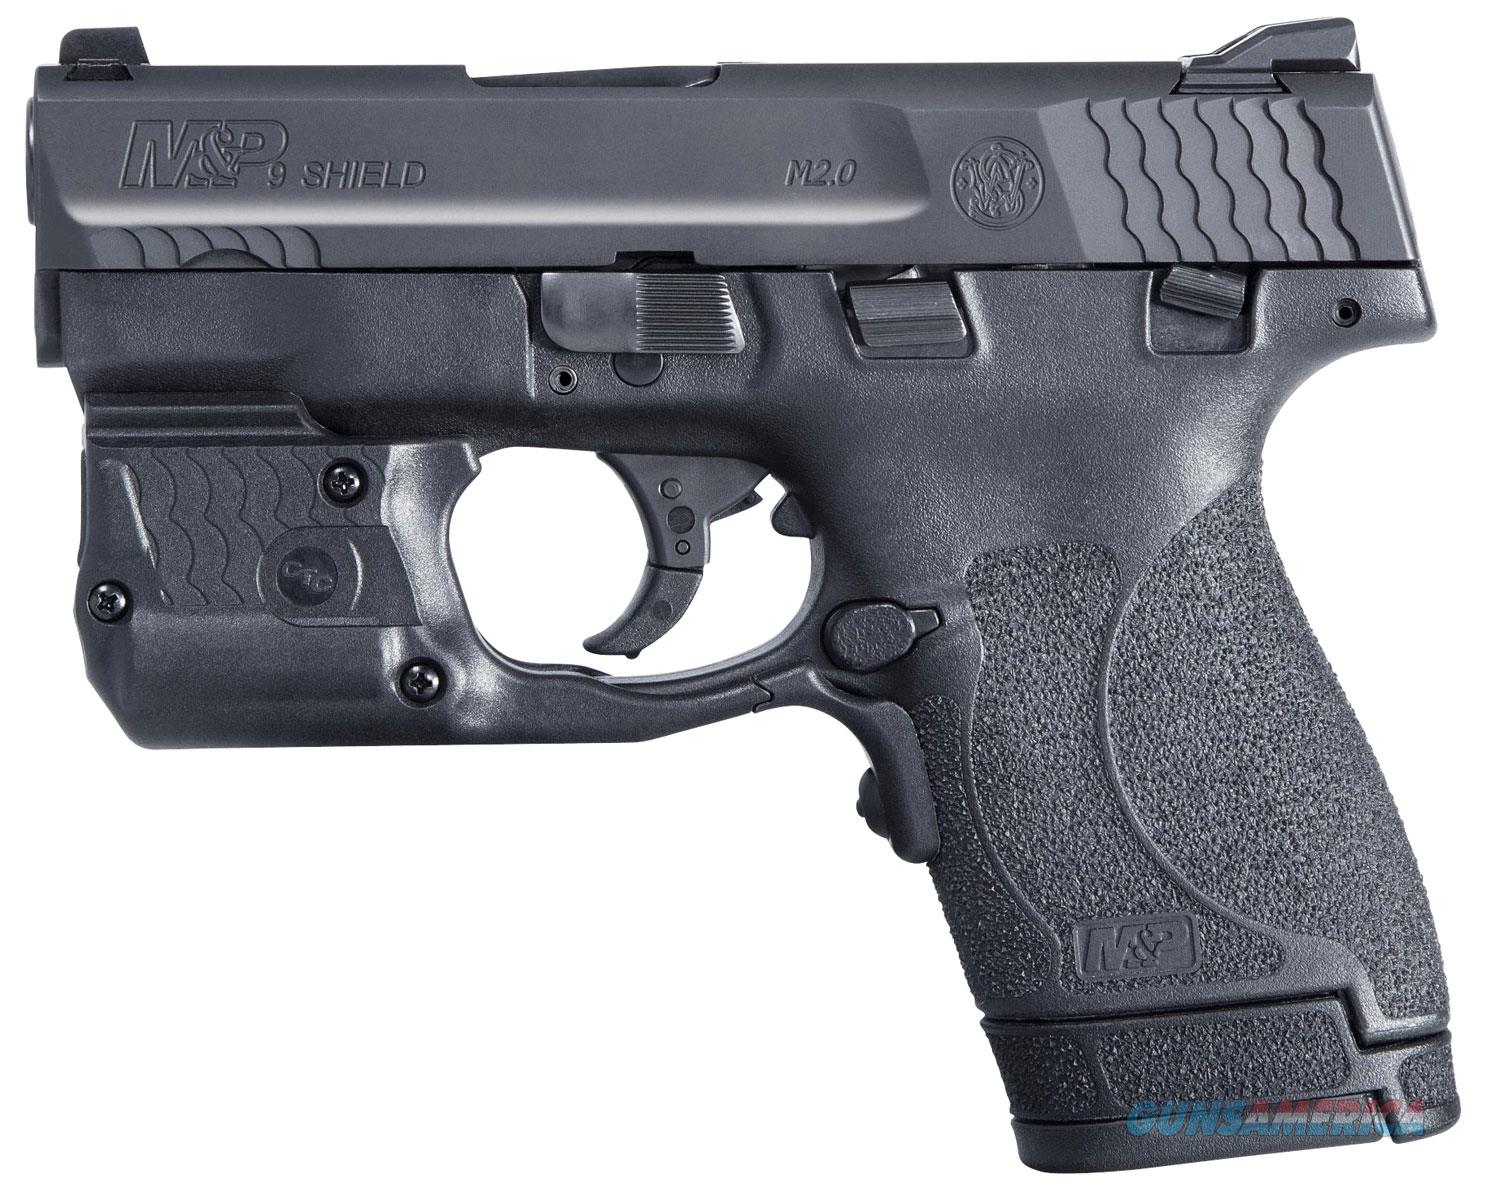 Smith & Wesson M&P9 Shield M2.0 11811 9mm 7+1/8+1 Crimson Trace Green Laserguard Pro laser/light  Guns > Pistols > Smith & Wesson Pistols - Autos > Shield